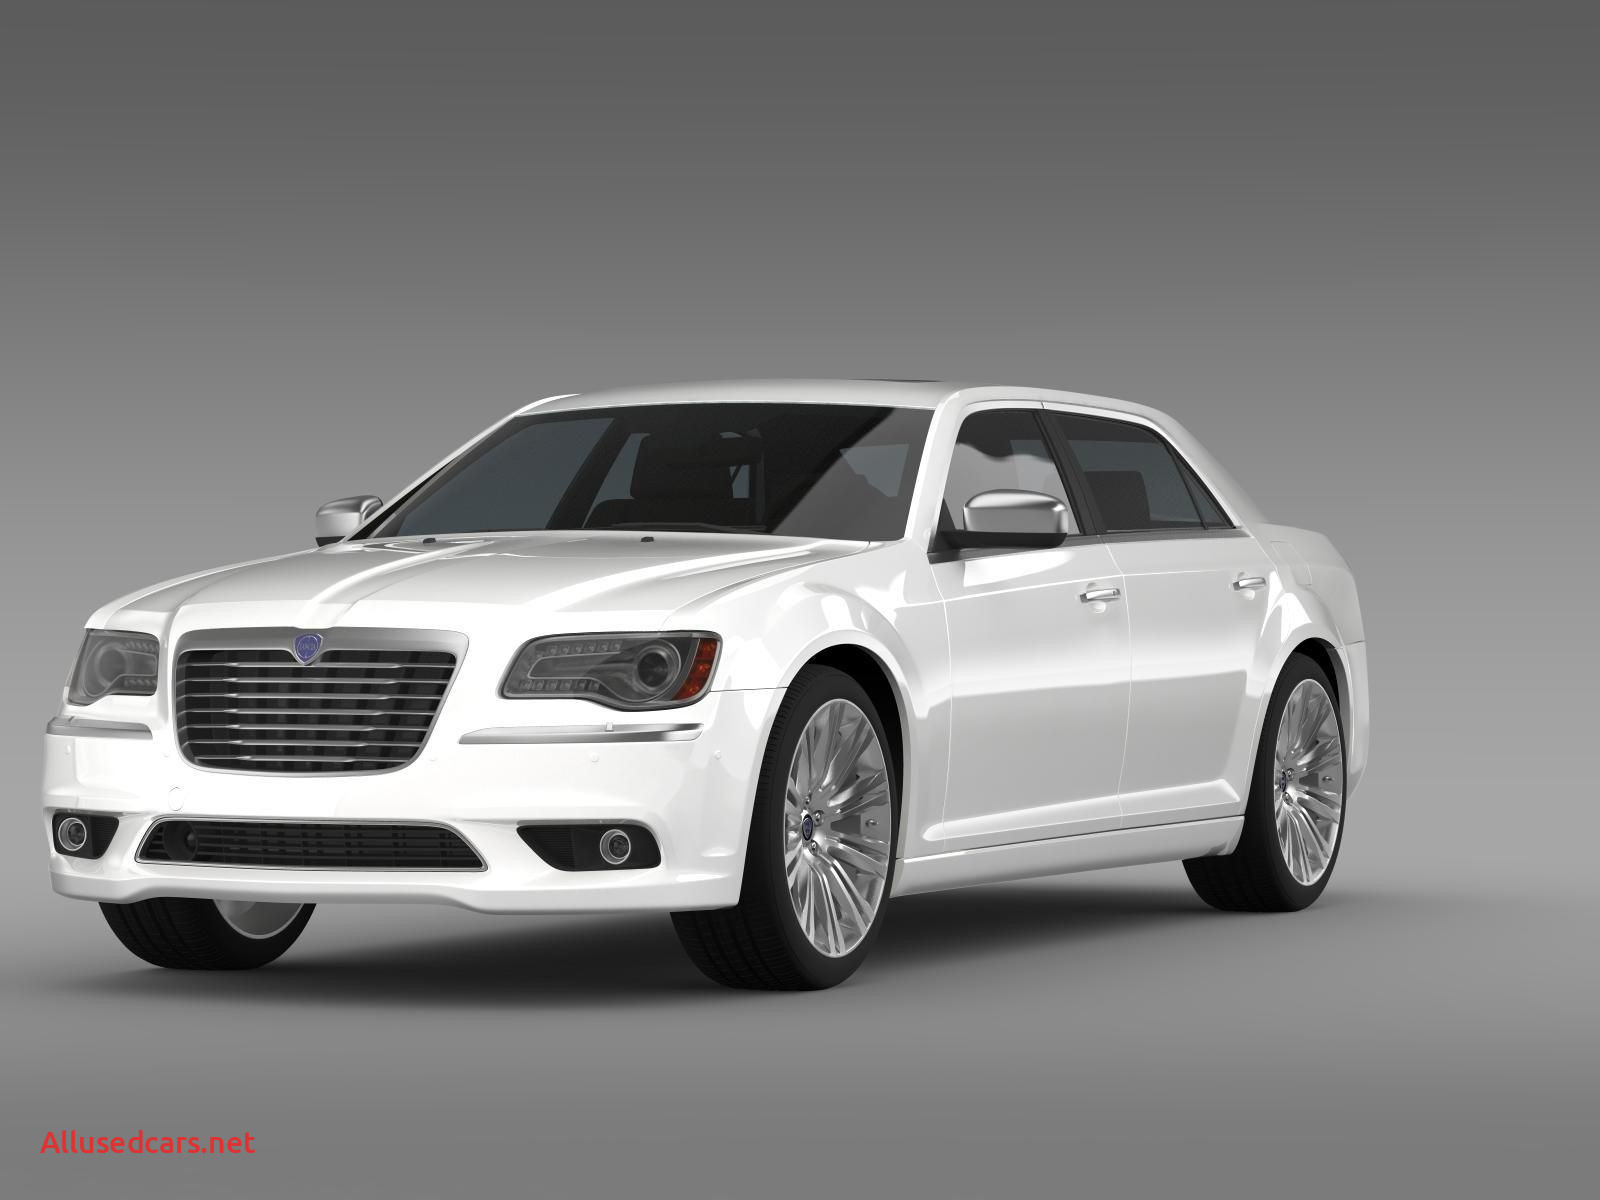 2011 Chrysler 300 Luxury Lancia thema 2014 Lwb thema Lancia Lwb